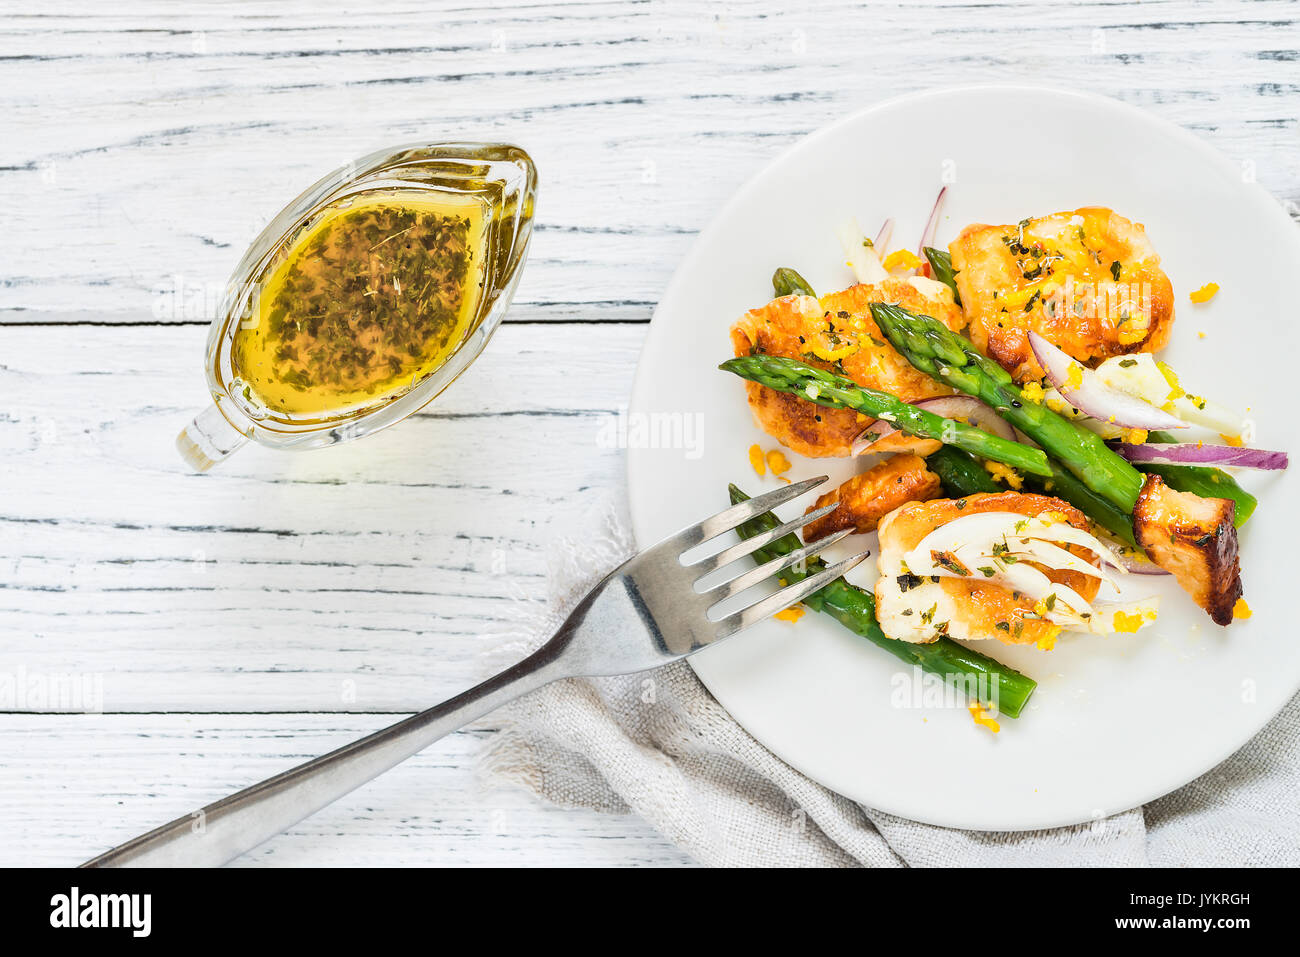 Salad with fried halloumi, asparagus and orange zest. Top view with fork. White wooden background Stock Photo